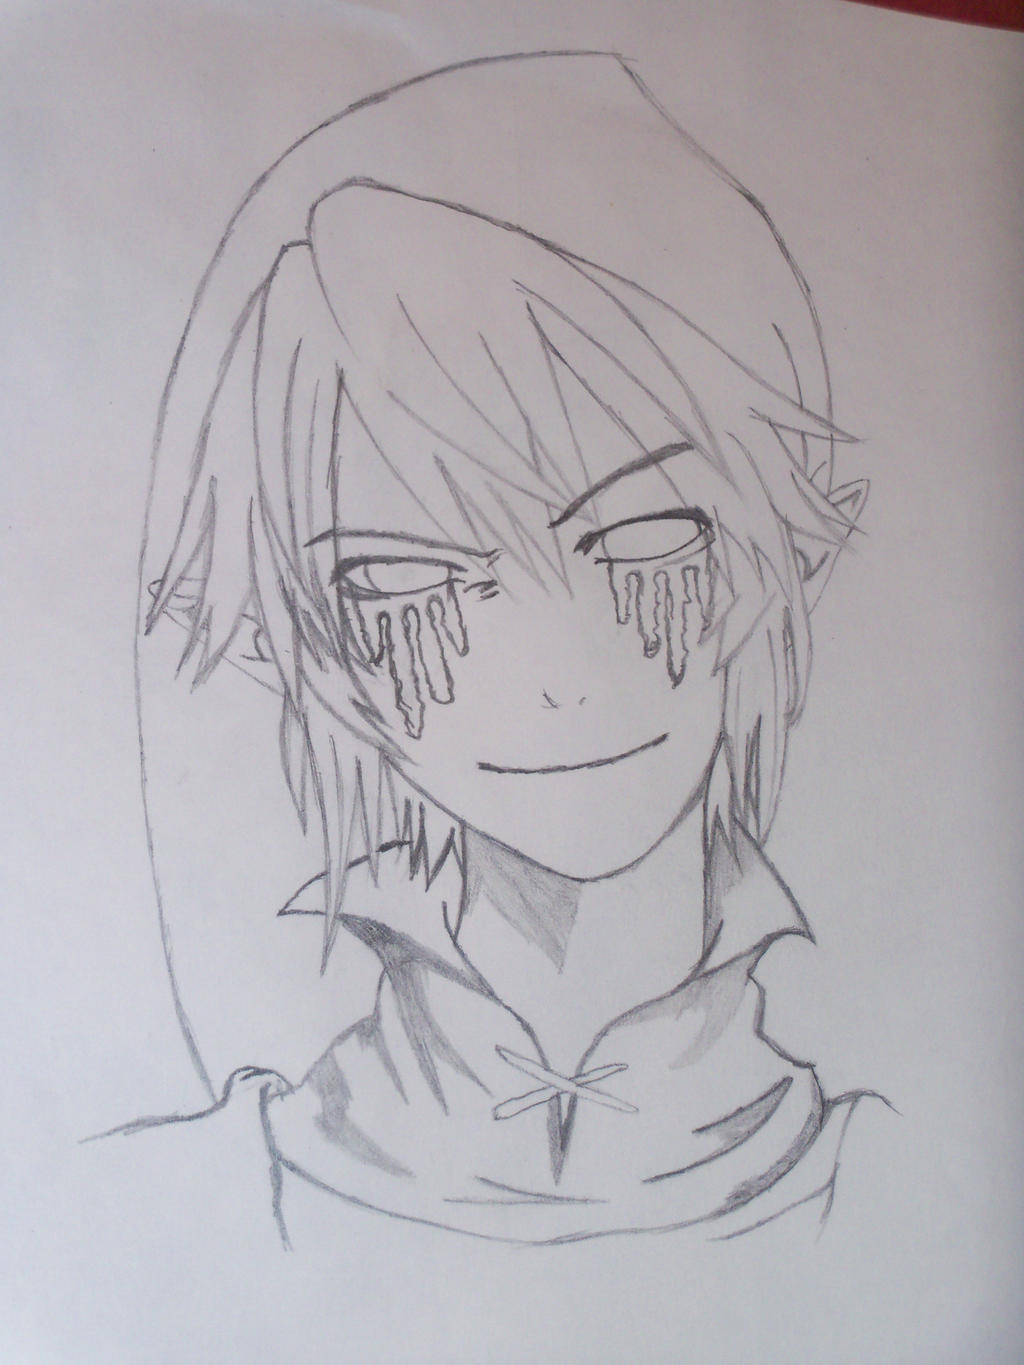 BEN Drowned sketch by SakataIchiro on DeviantArt